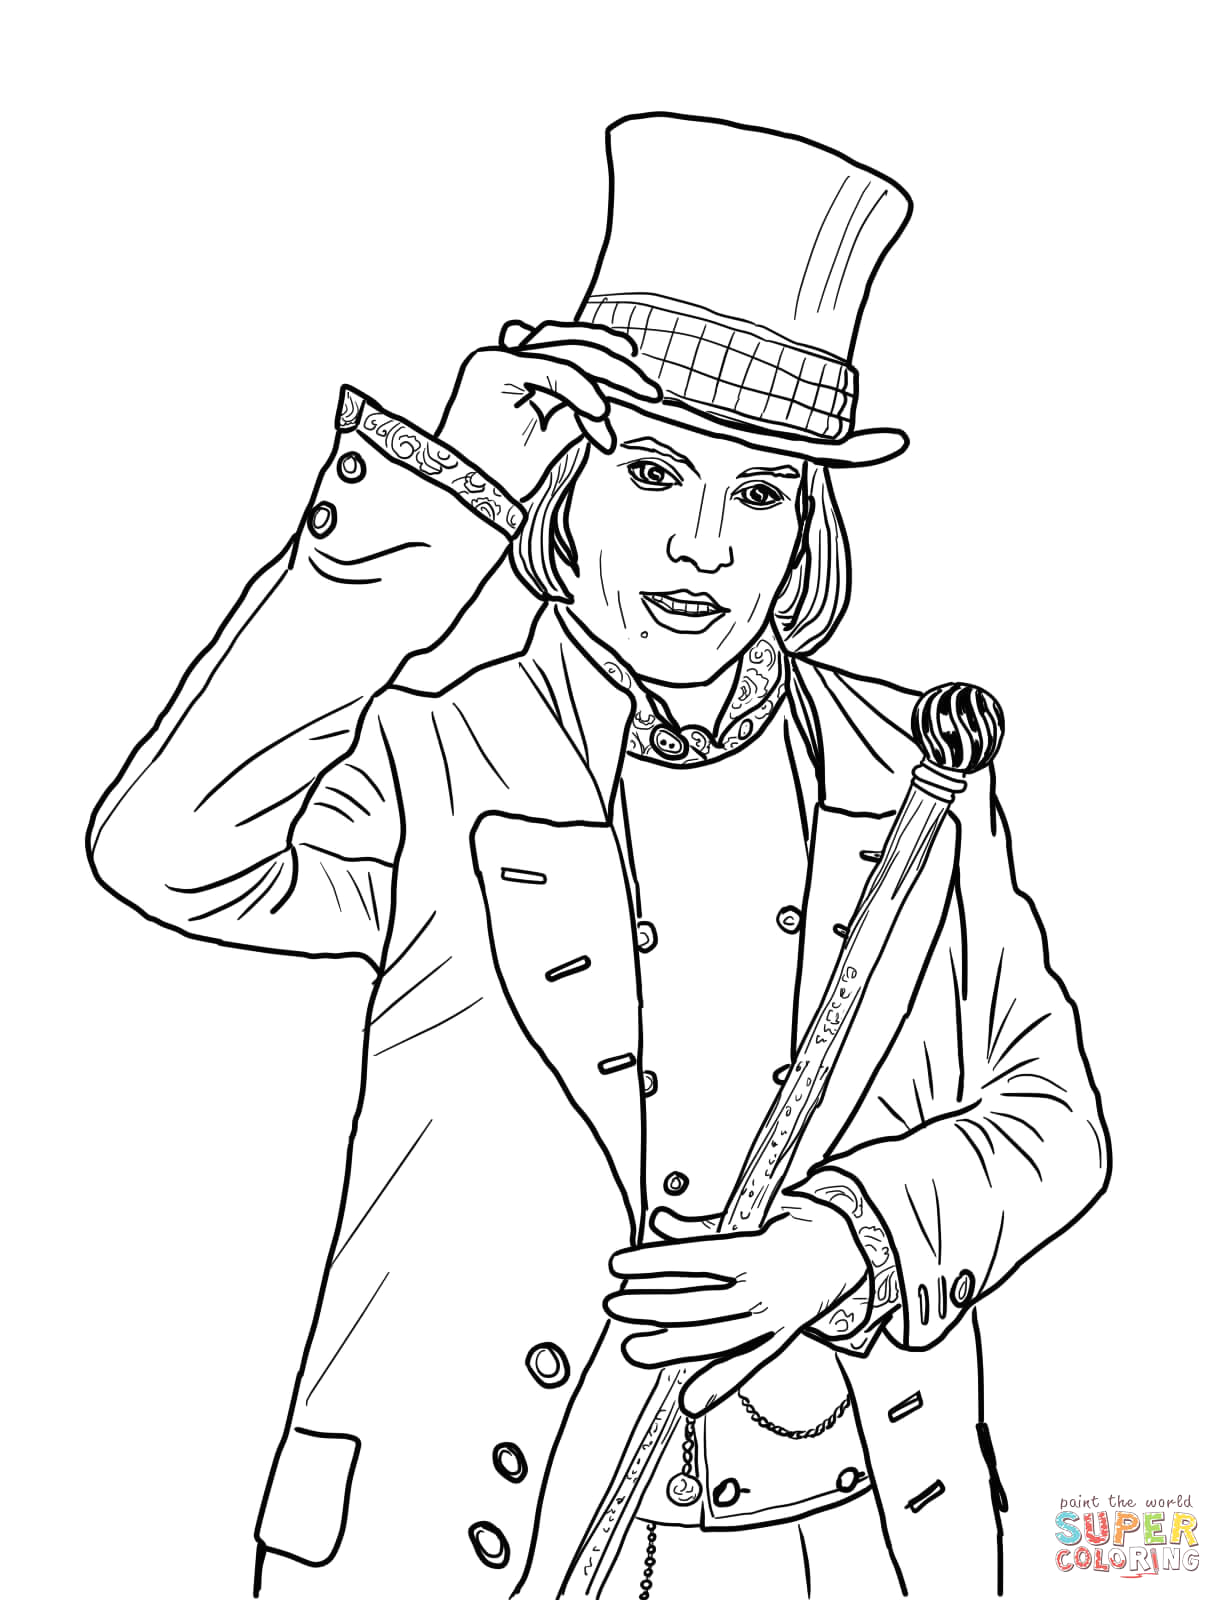 Charlie and the Chocolate Factory Coloring Pages Charlie and the Chocolate Factory Coloring Pages